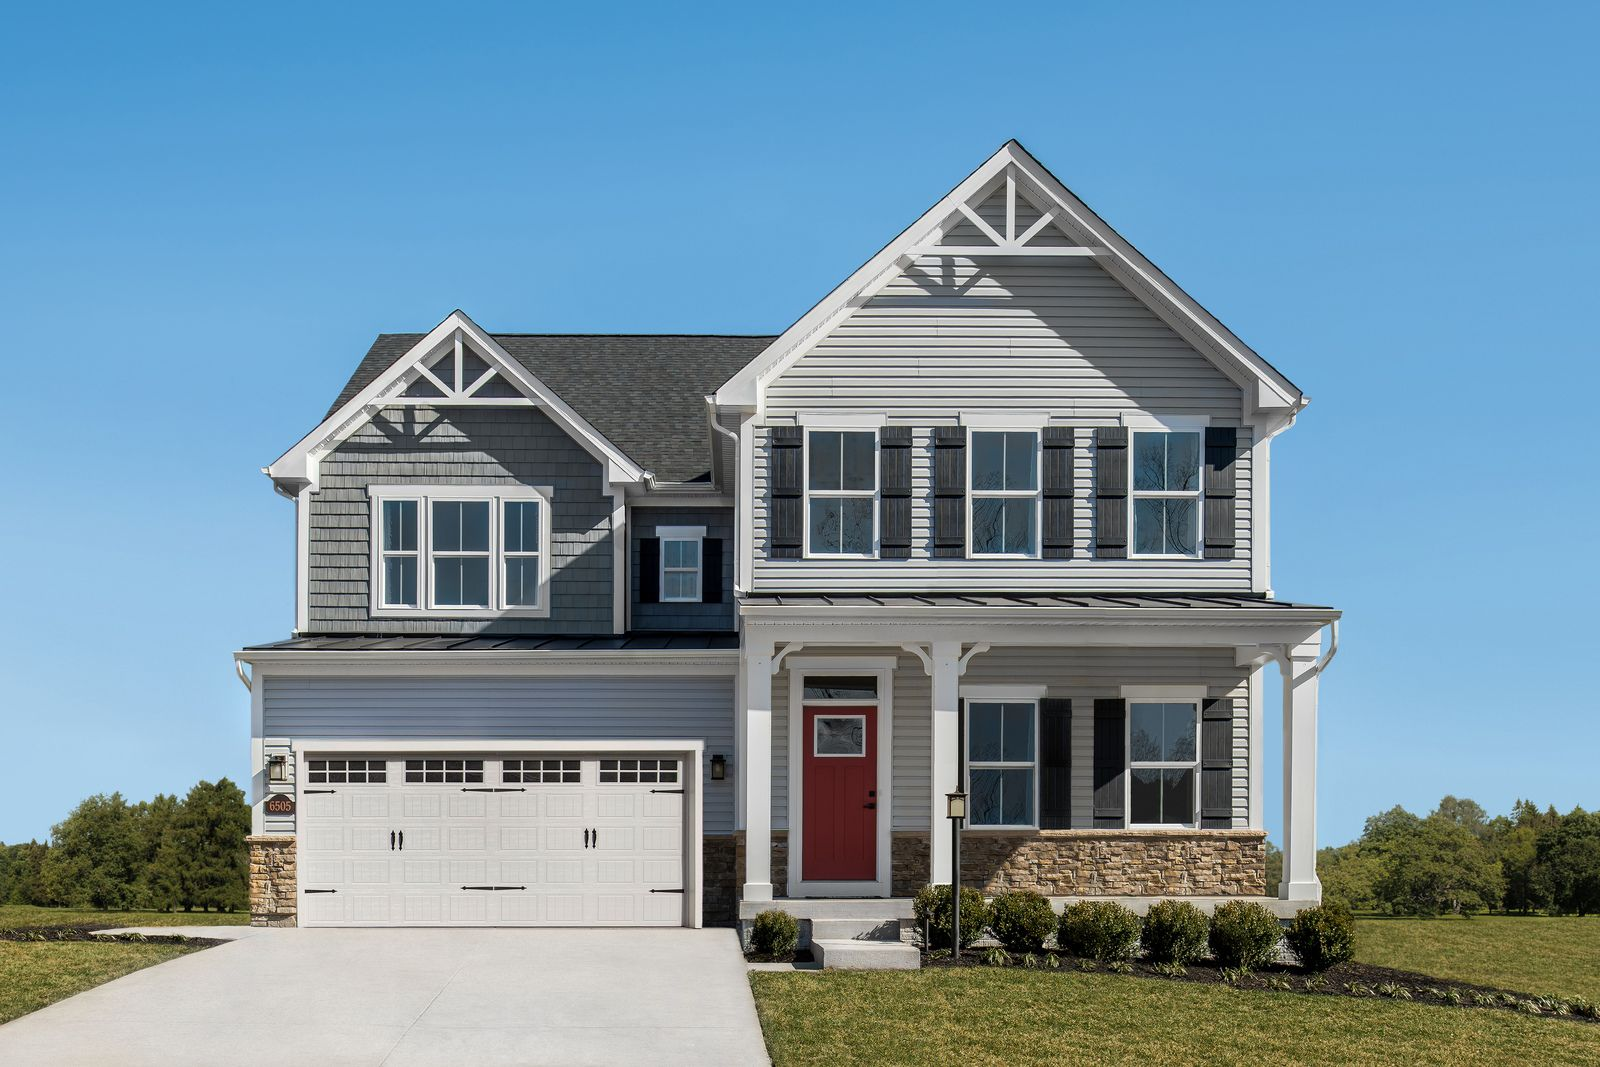 WELCOME TO LAKE LINGANORE HAMPTONS IN NEW MARKET, MD:Live in the area's premier resort-style lake community. Own a new home in a quiet wooded enclave that's minutes to everything you need.Schedule your appointment today!